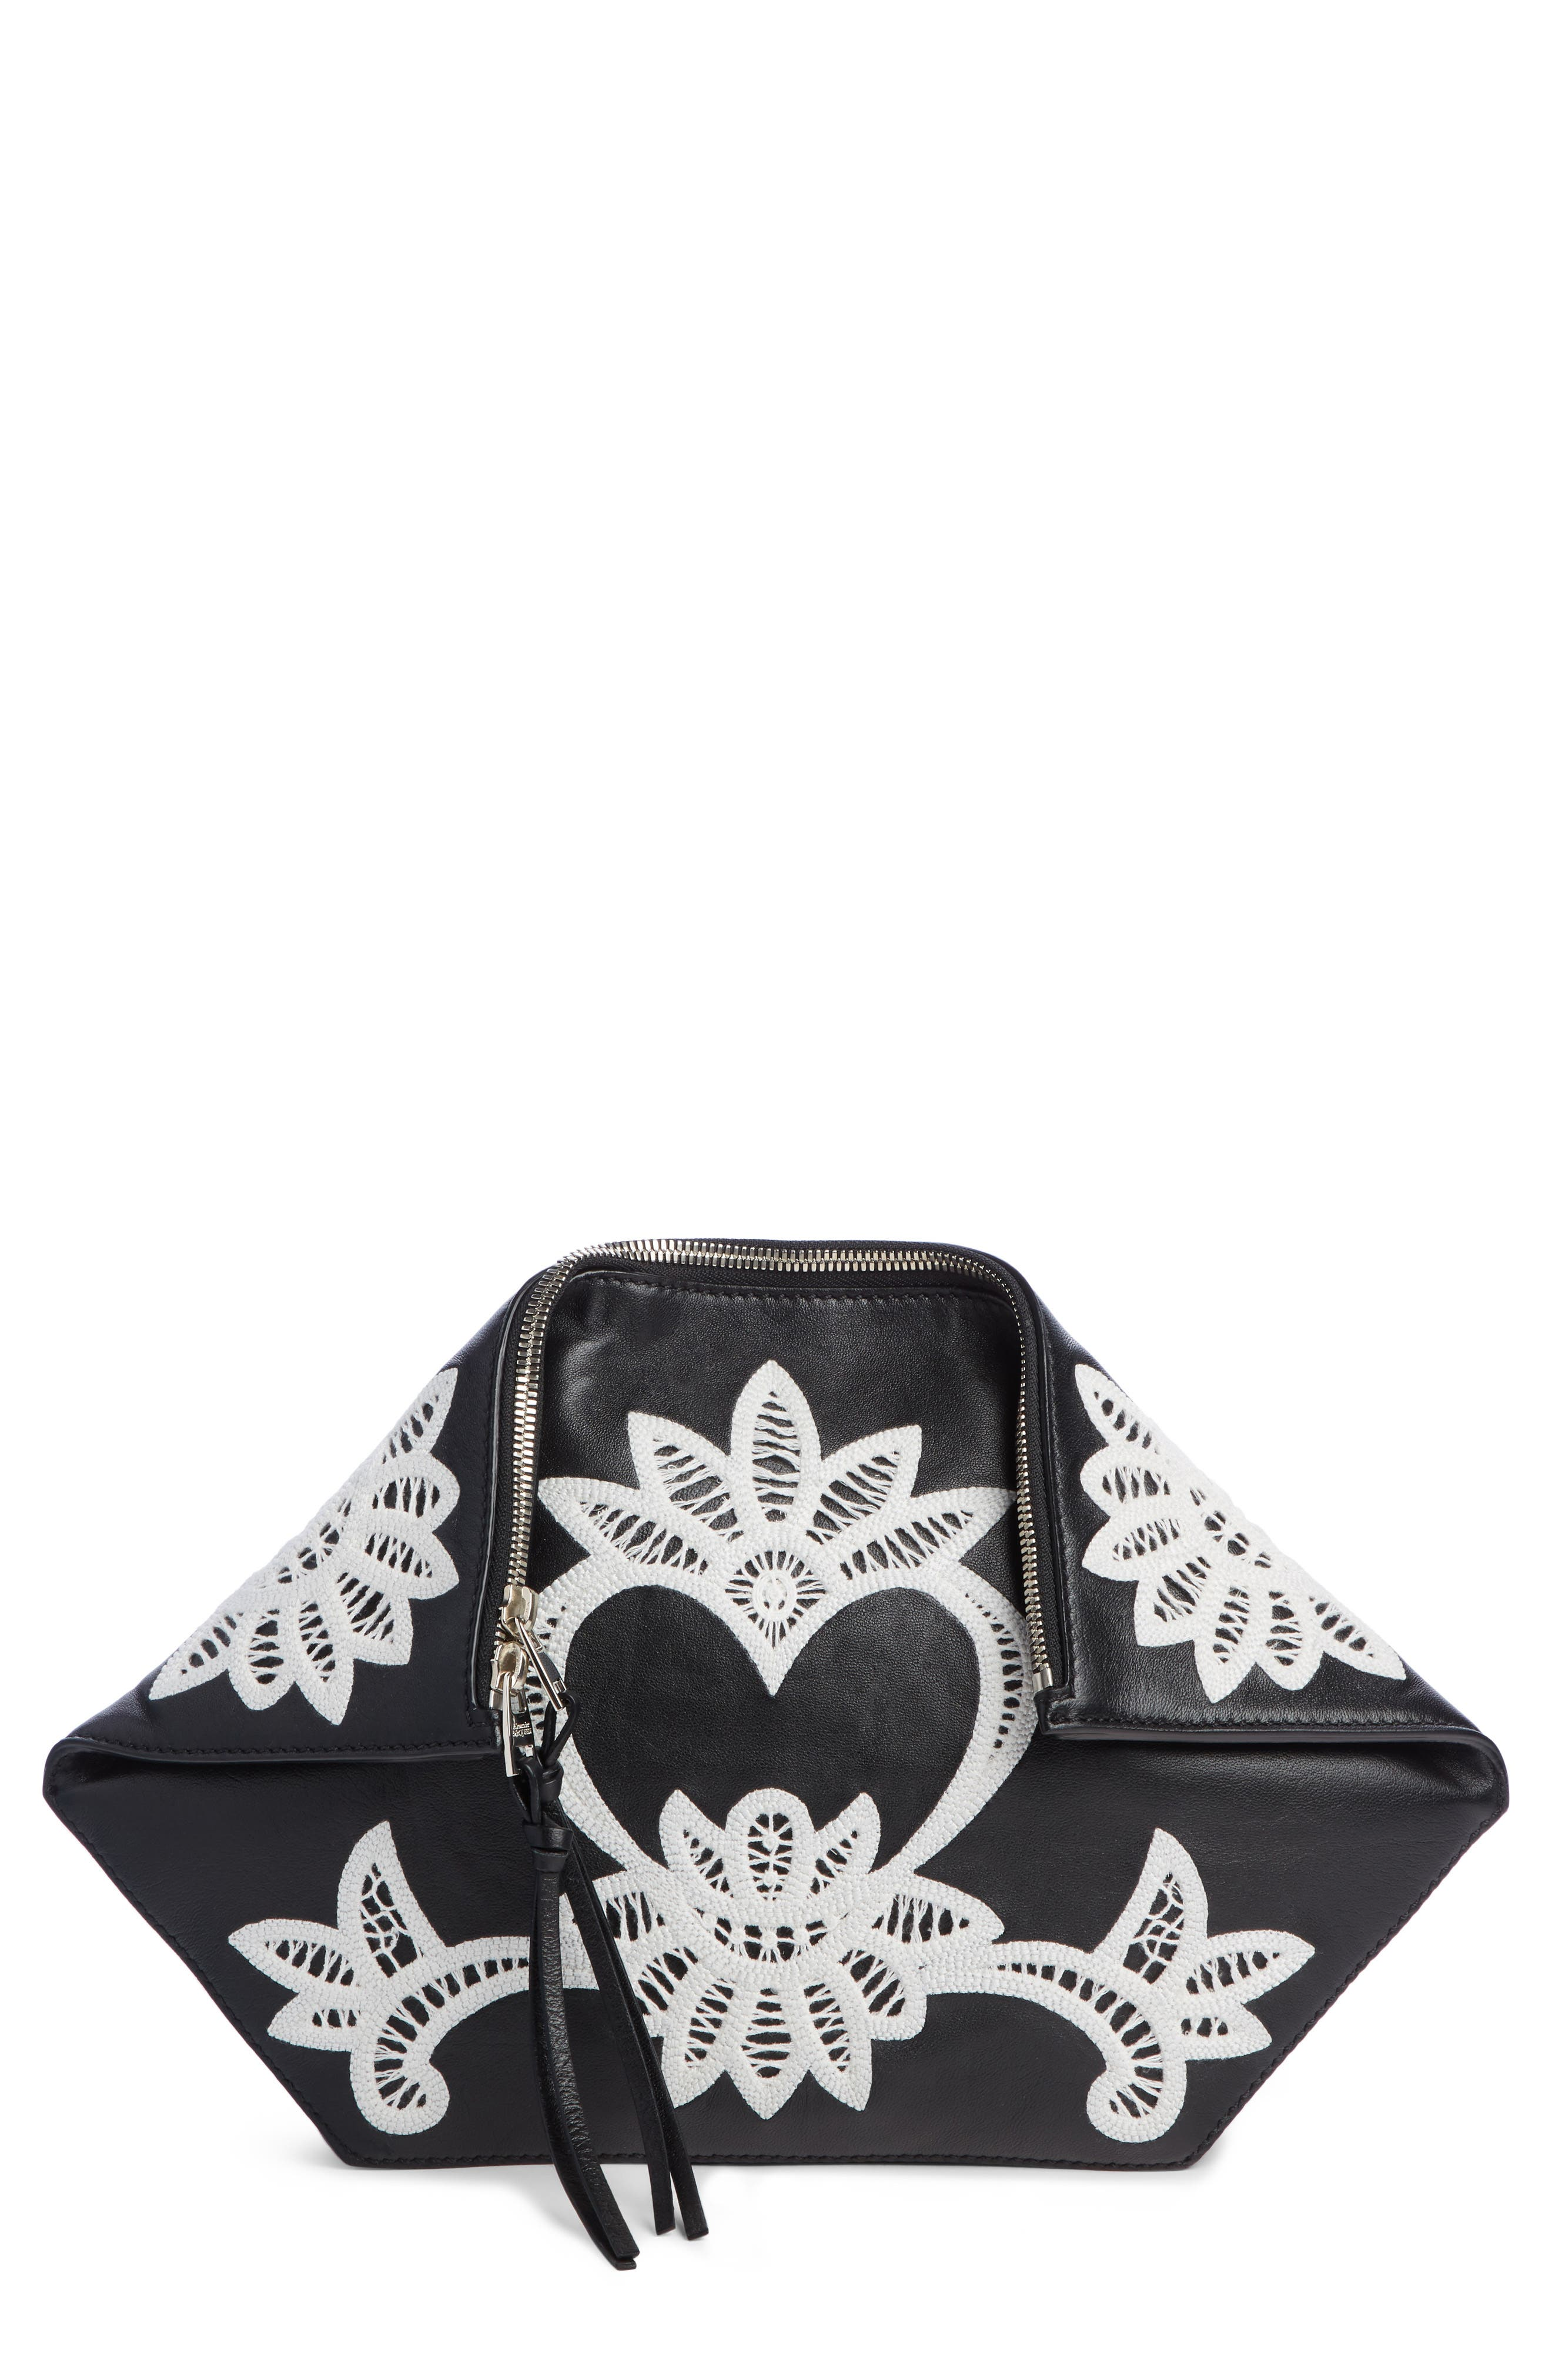 ALEXANDER MCQUEEN Embroidered Leather Butterfly Pouch, Main, color, BLACK/ IVORY